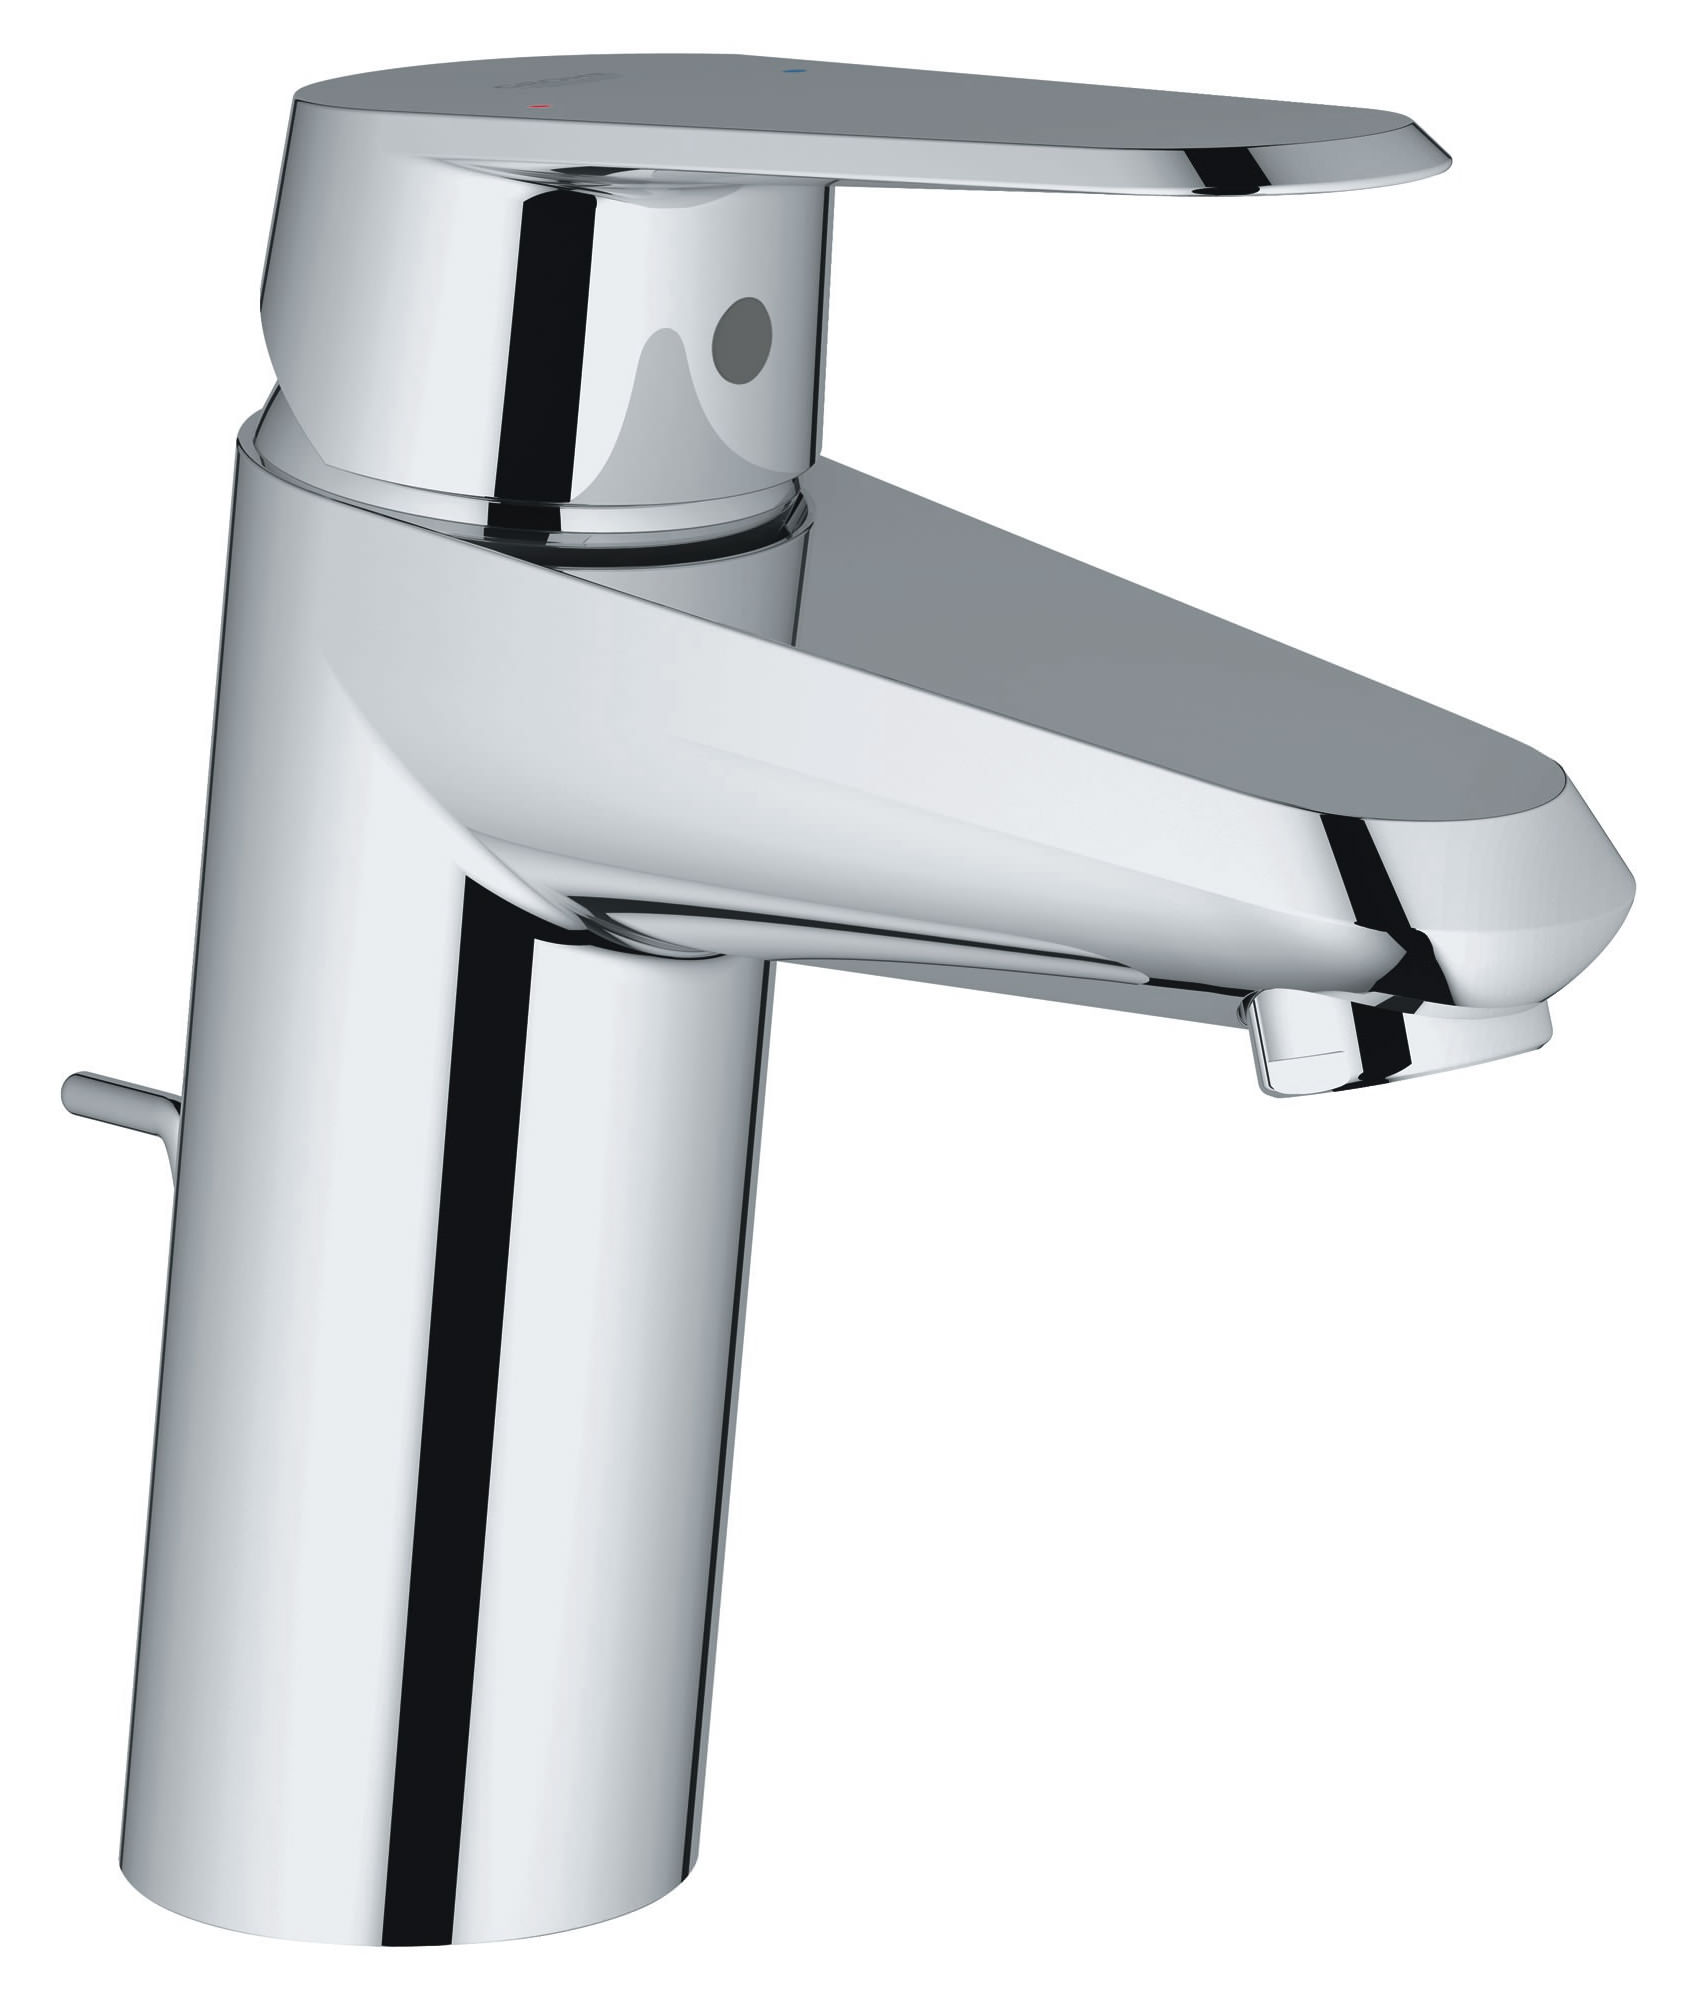 grohe eurodisc cosmopolitan basin mixer tap. Black Bedroom Furniture Sets. Home Design Ideas